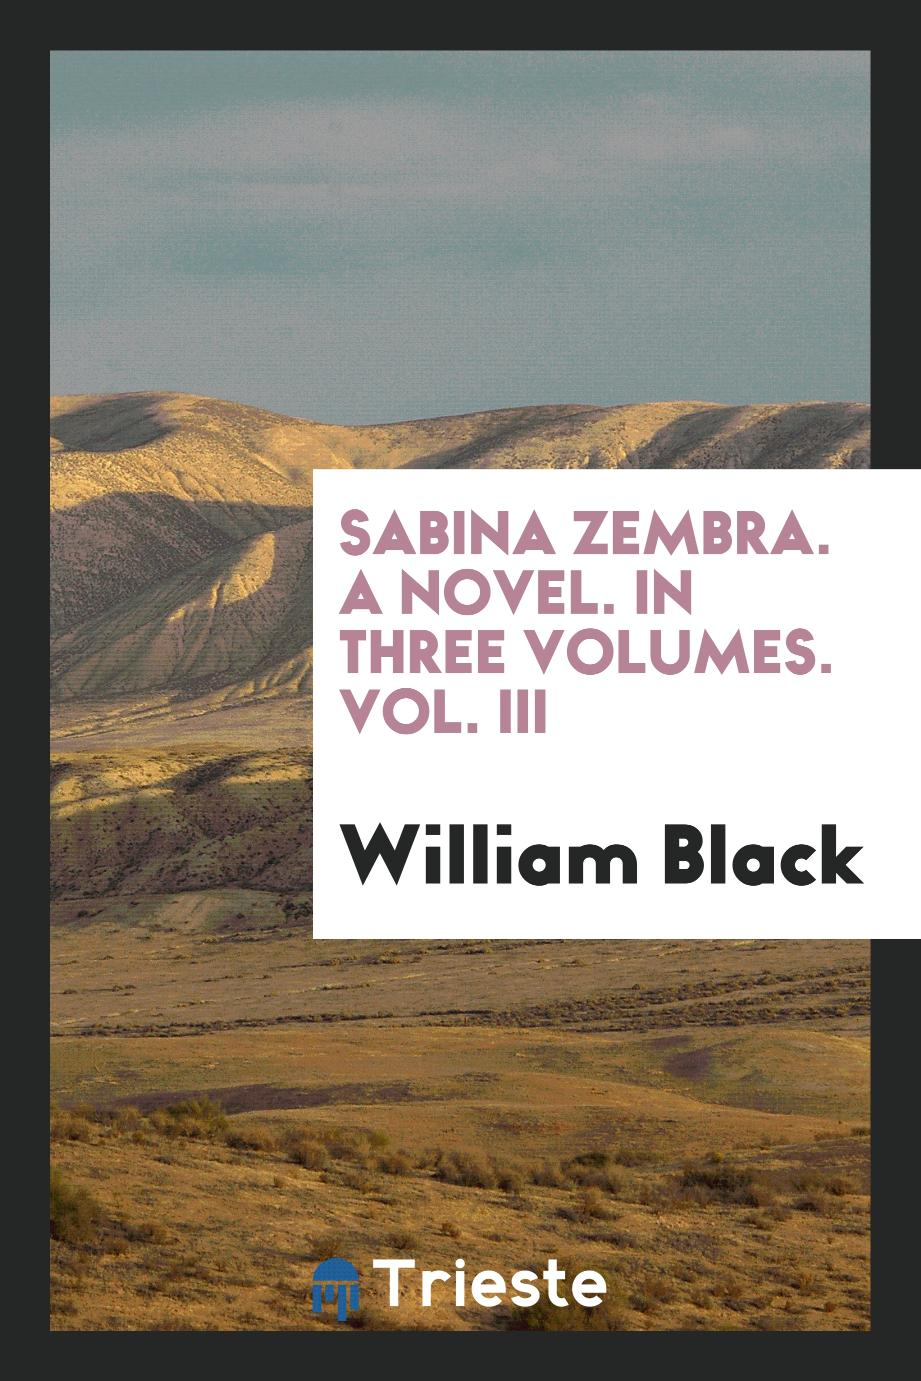 Sabina Zembra. A novel. In three volumes. Vol. III